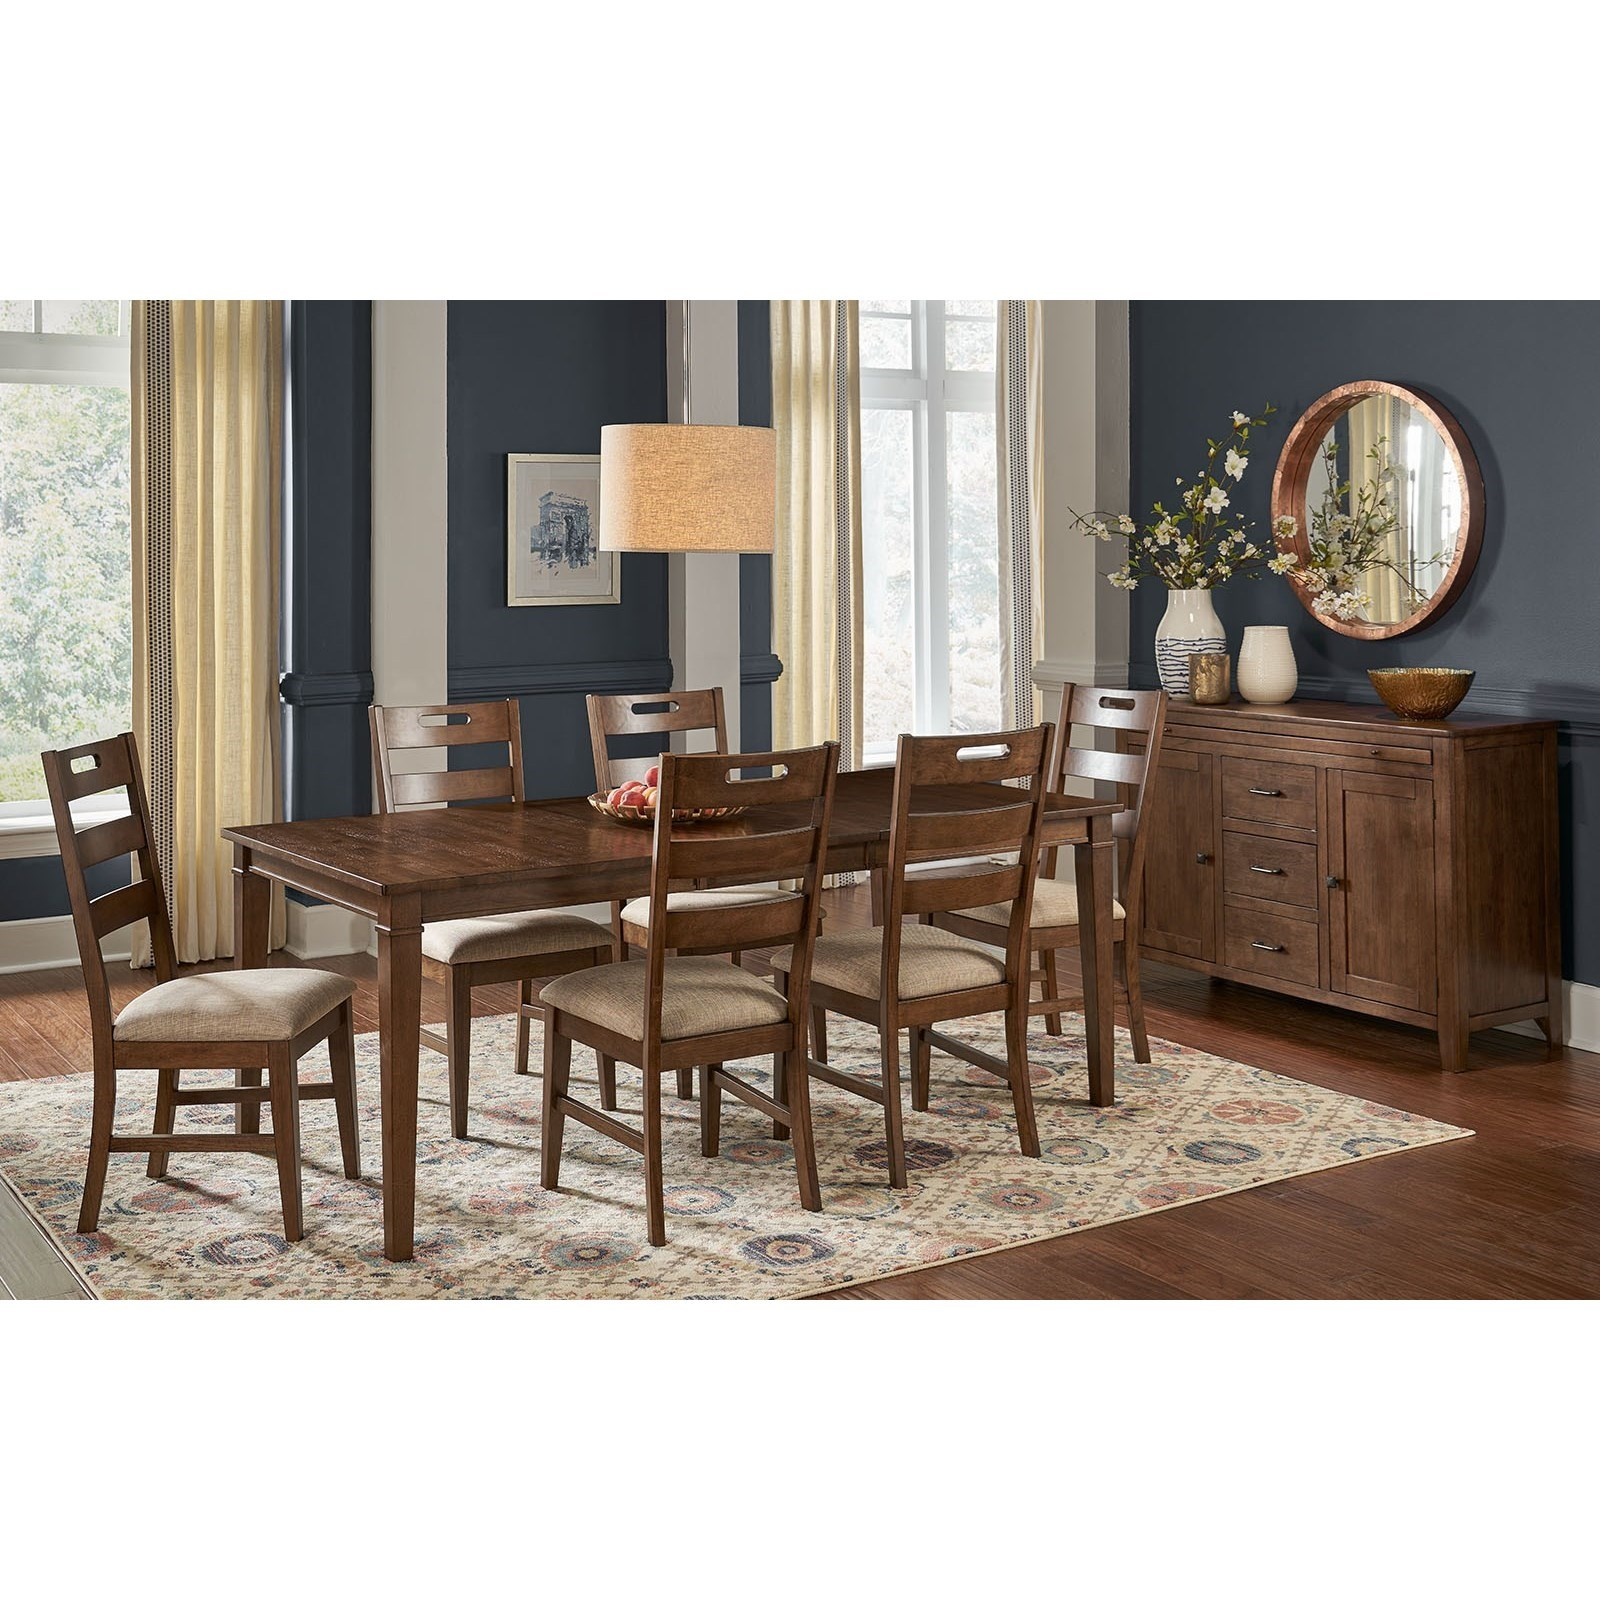 Blue Mountain 7-Piece Table and Chair Set by AAmerica at Zak's Home